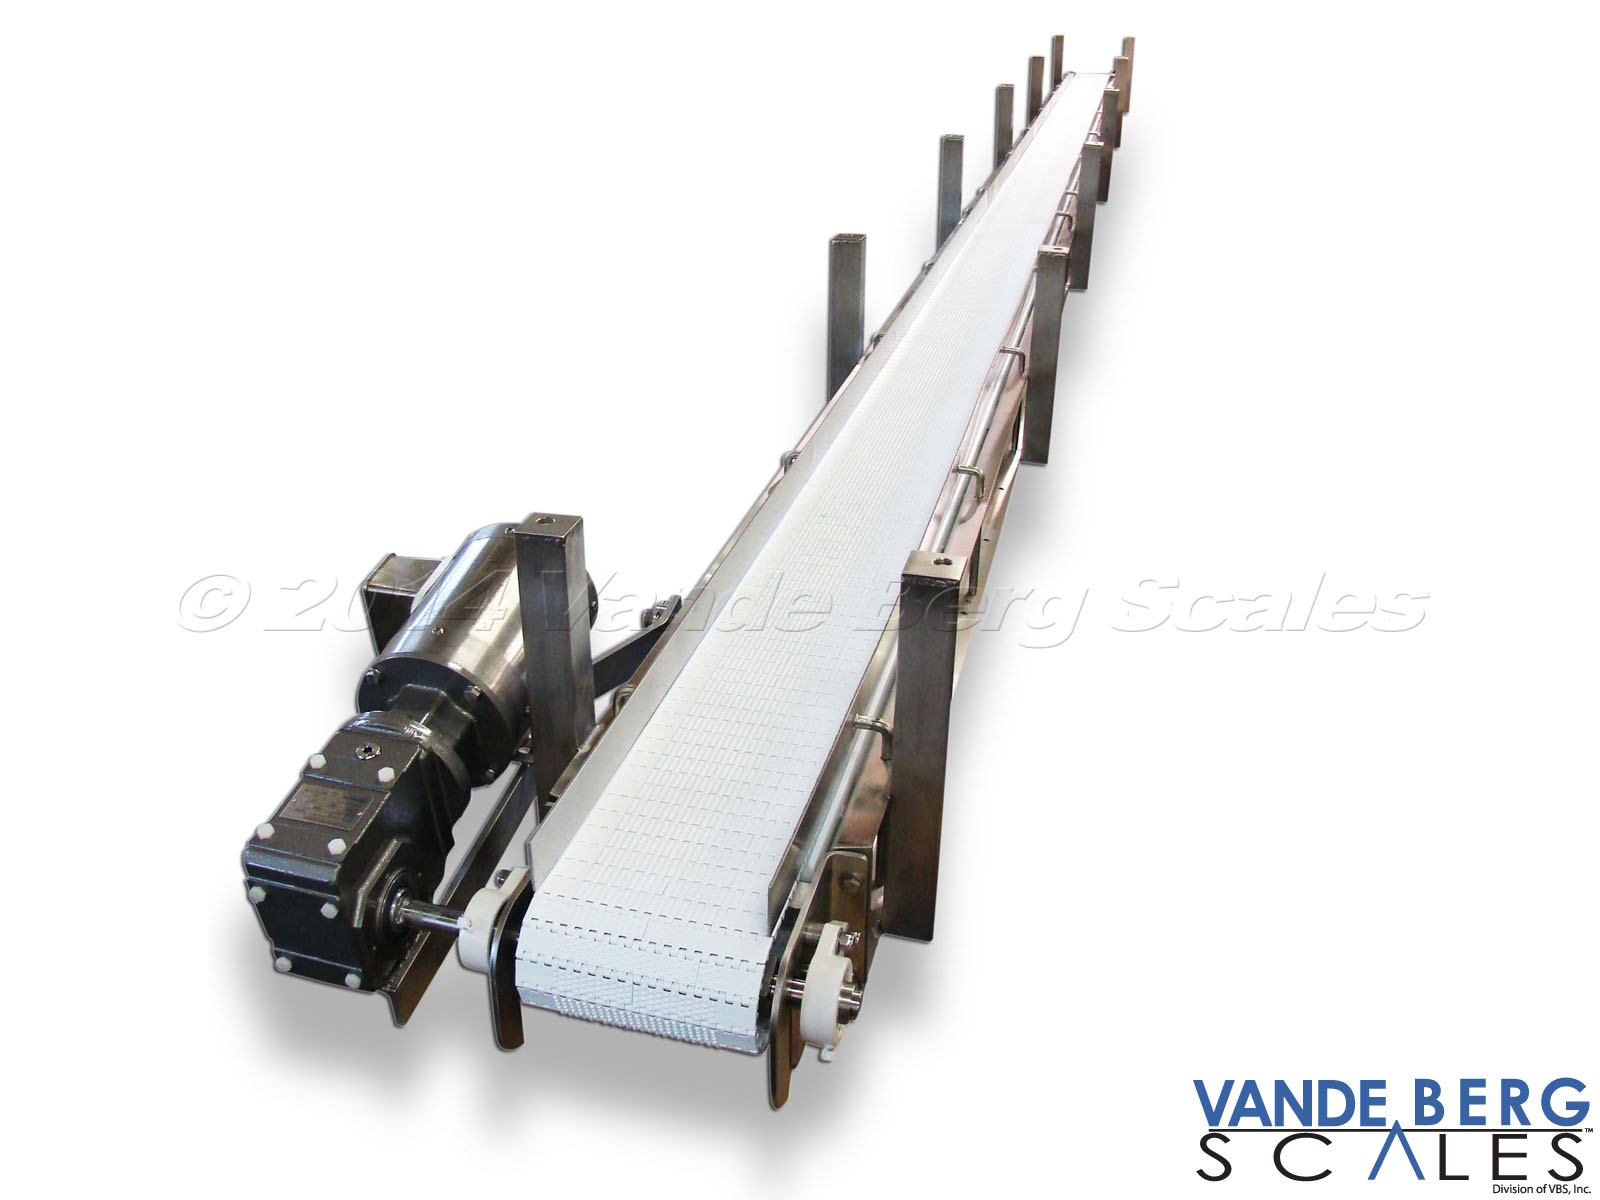 Ceiling-hung washdown conveyor with stainless steel motor